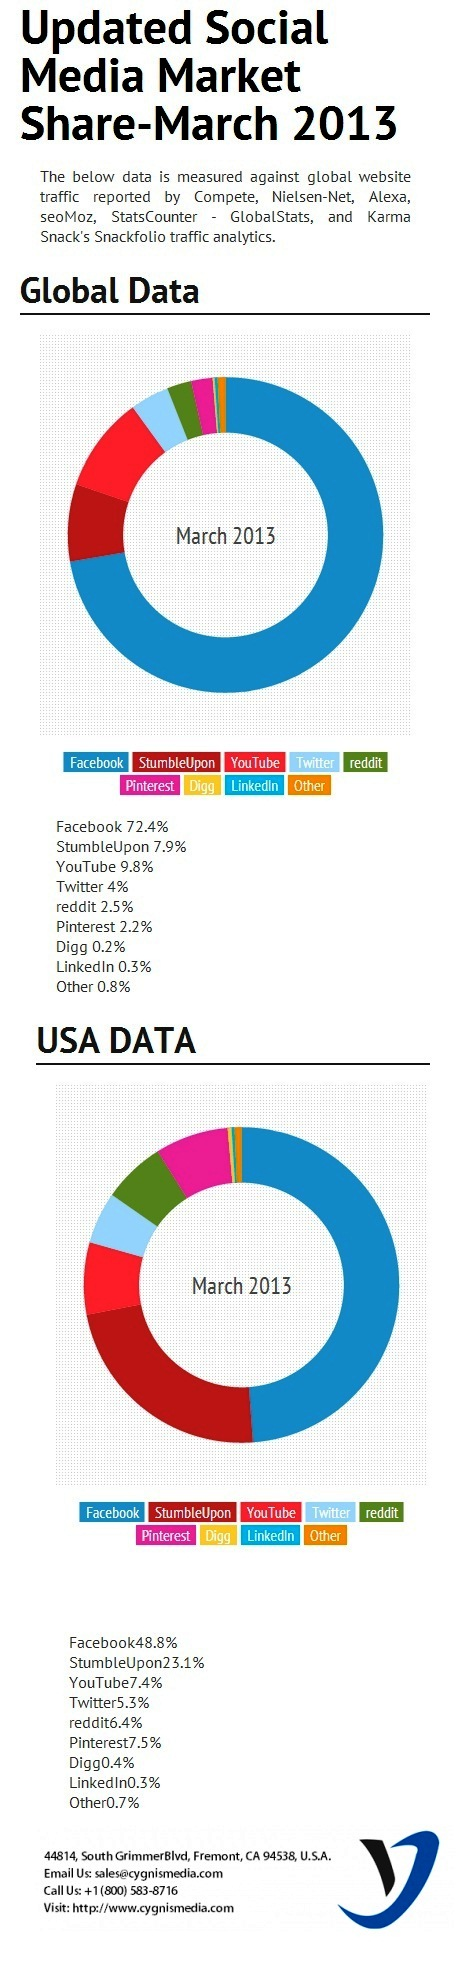 social-media-market-share-2013-infographic_5211ec101729b